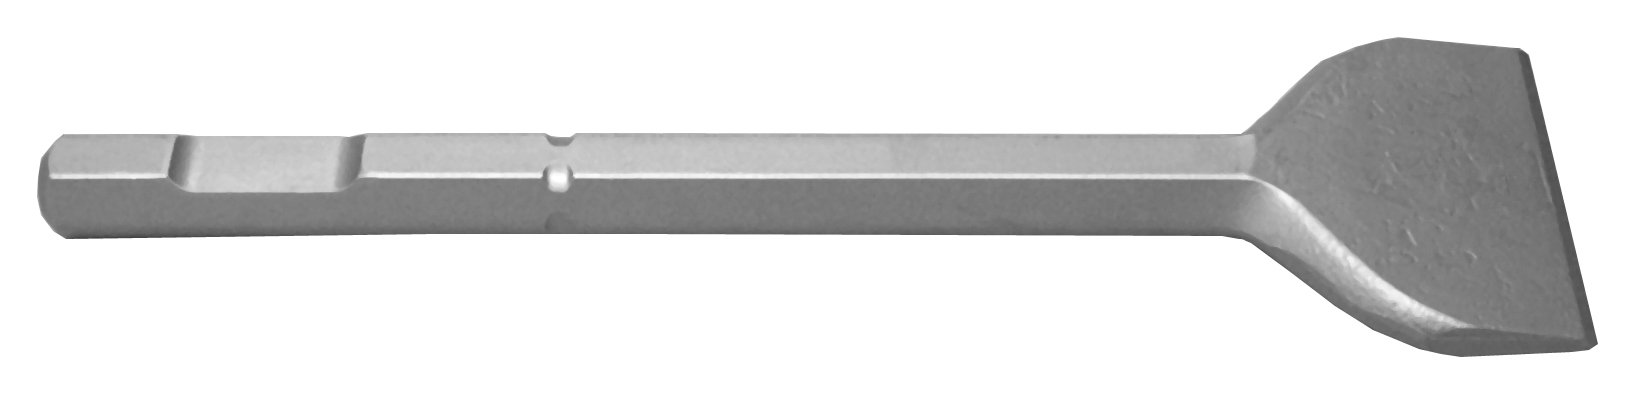 Champion Chisel, 3/4-Inch Hex Demo Shank, 12-Inch Long by 3-Inch Wide Chisel